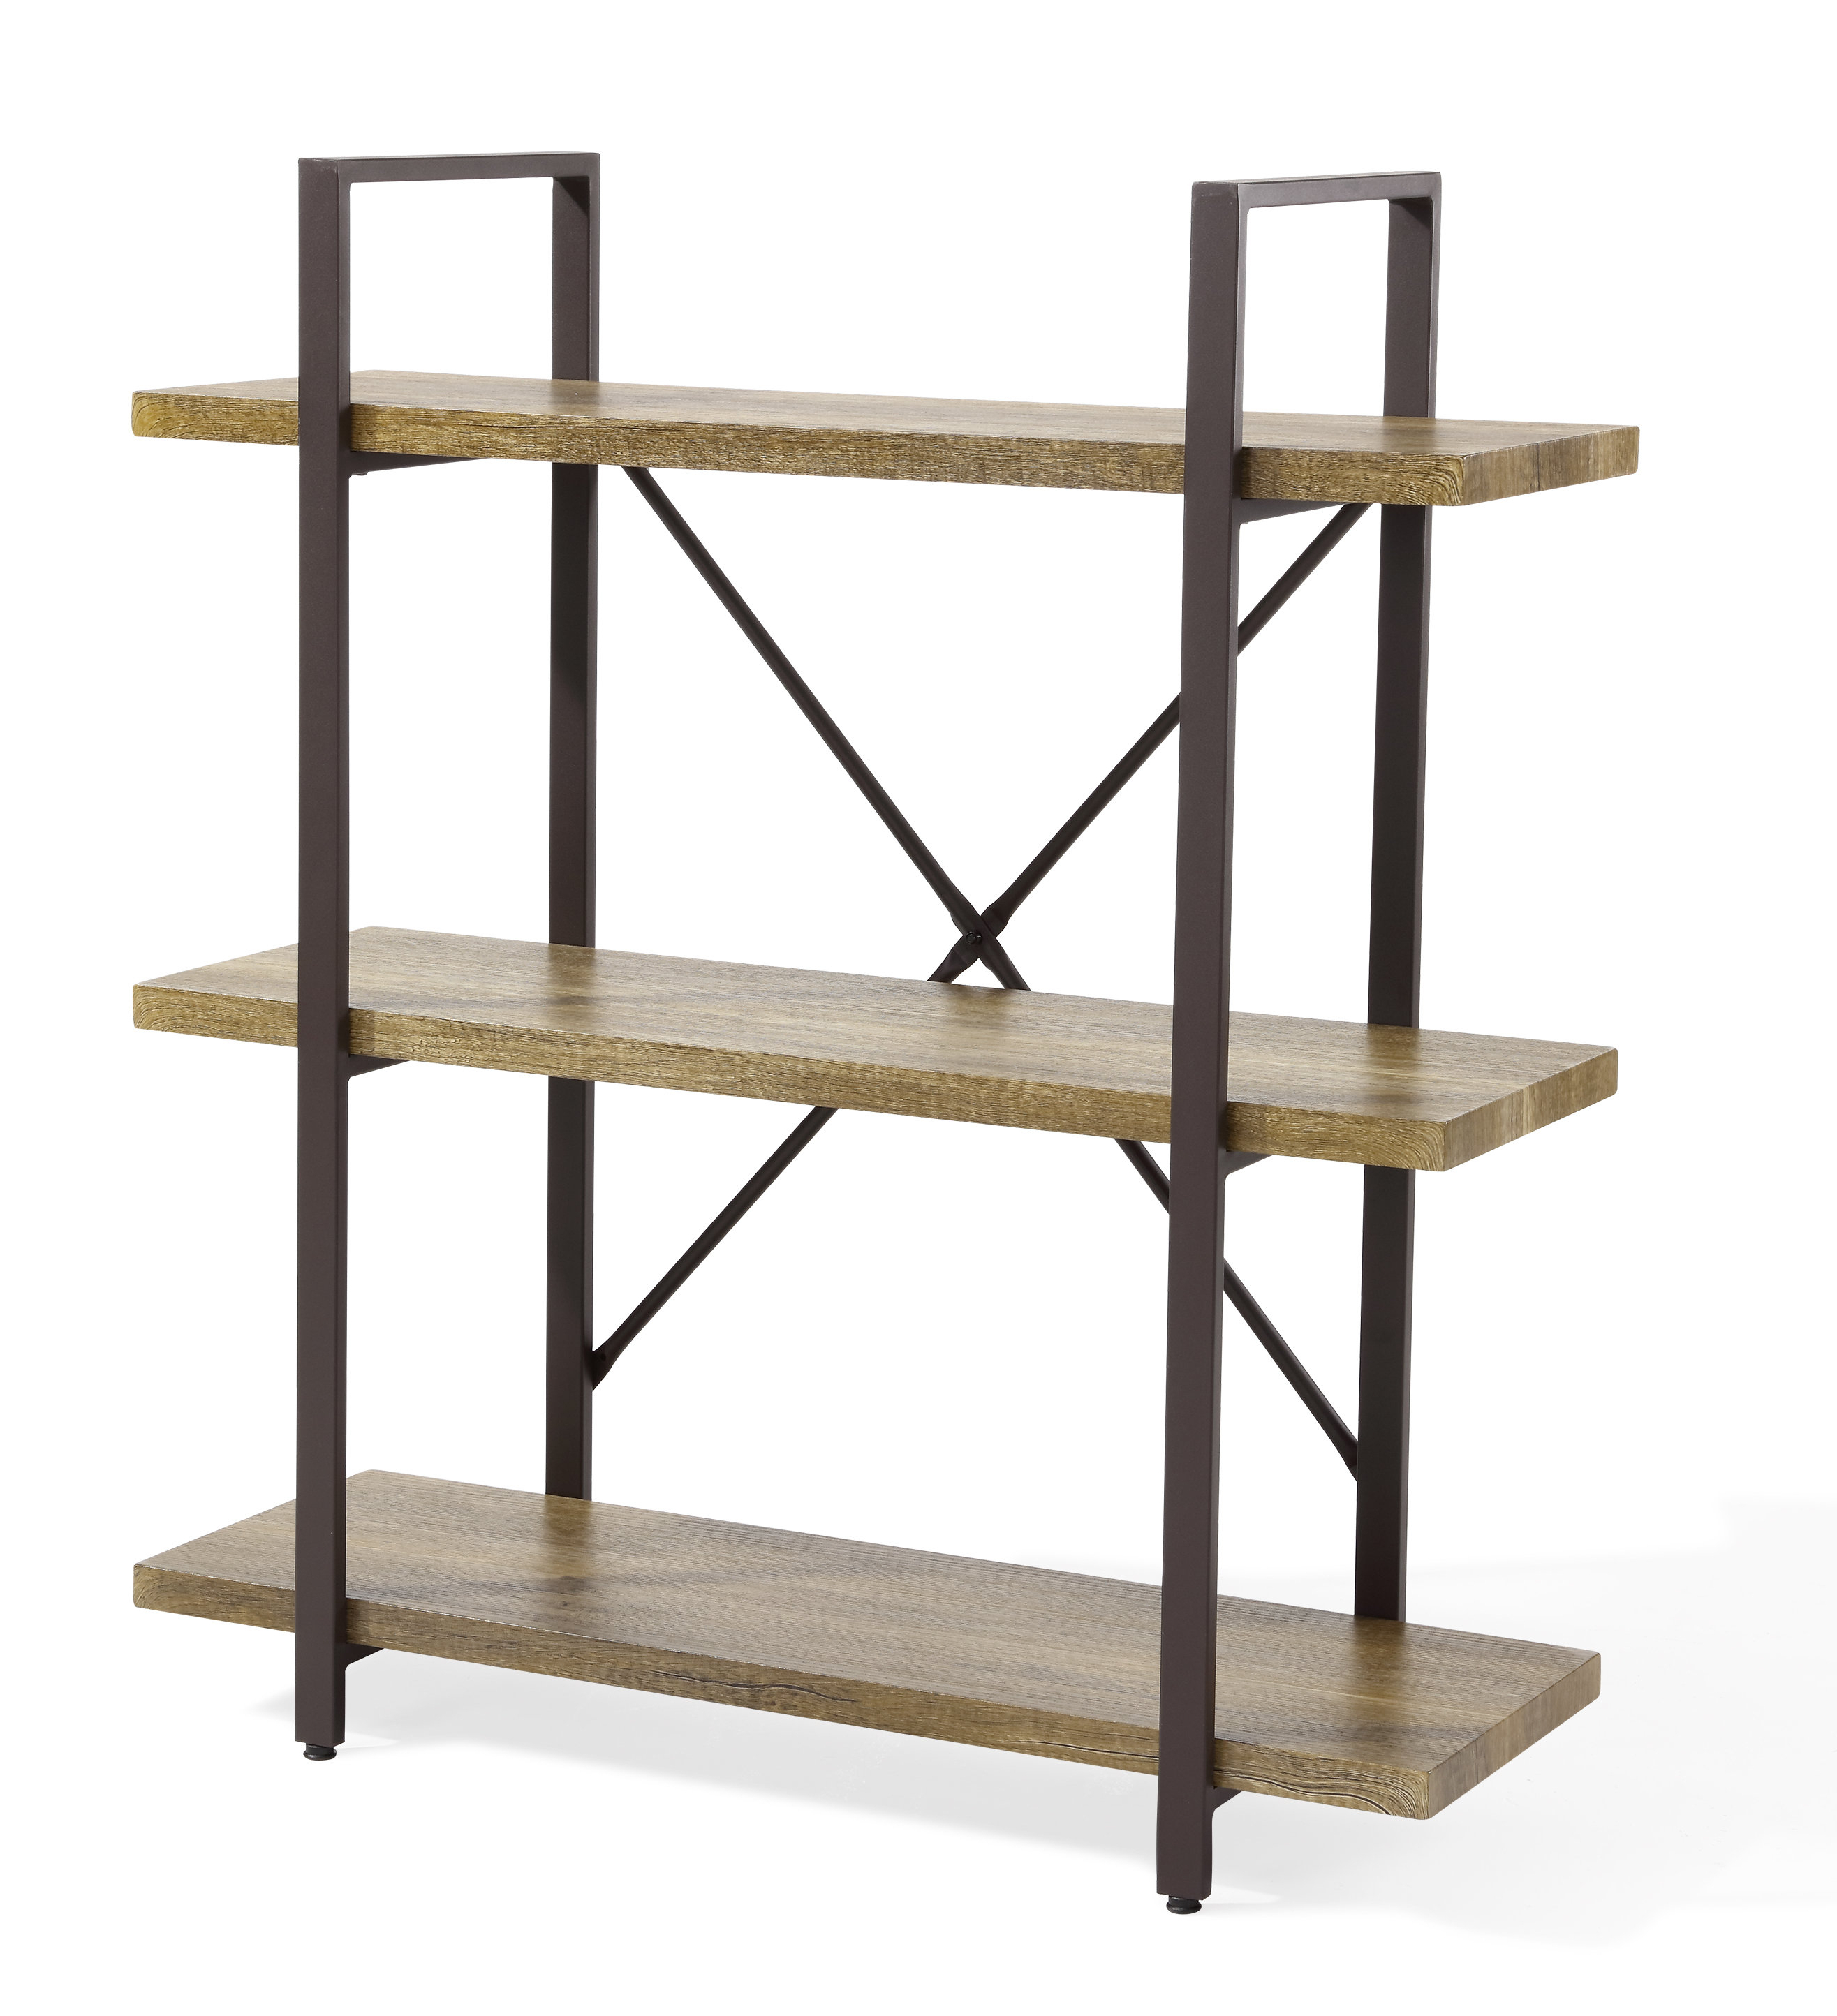 Swindell Etagere Bookcases Pertaining To Well Known Earline Etagere Bookcase (View 15 of 20)